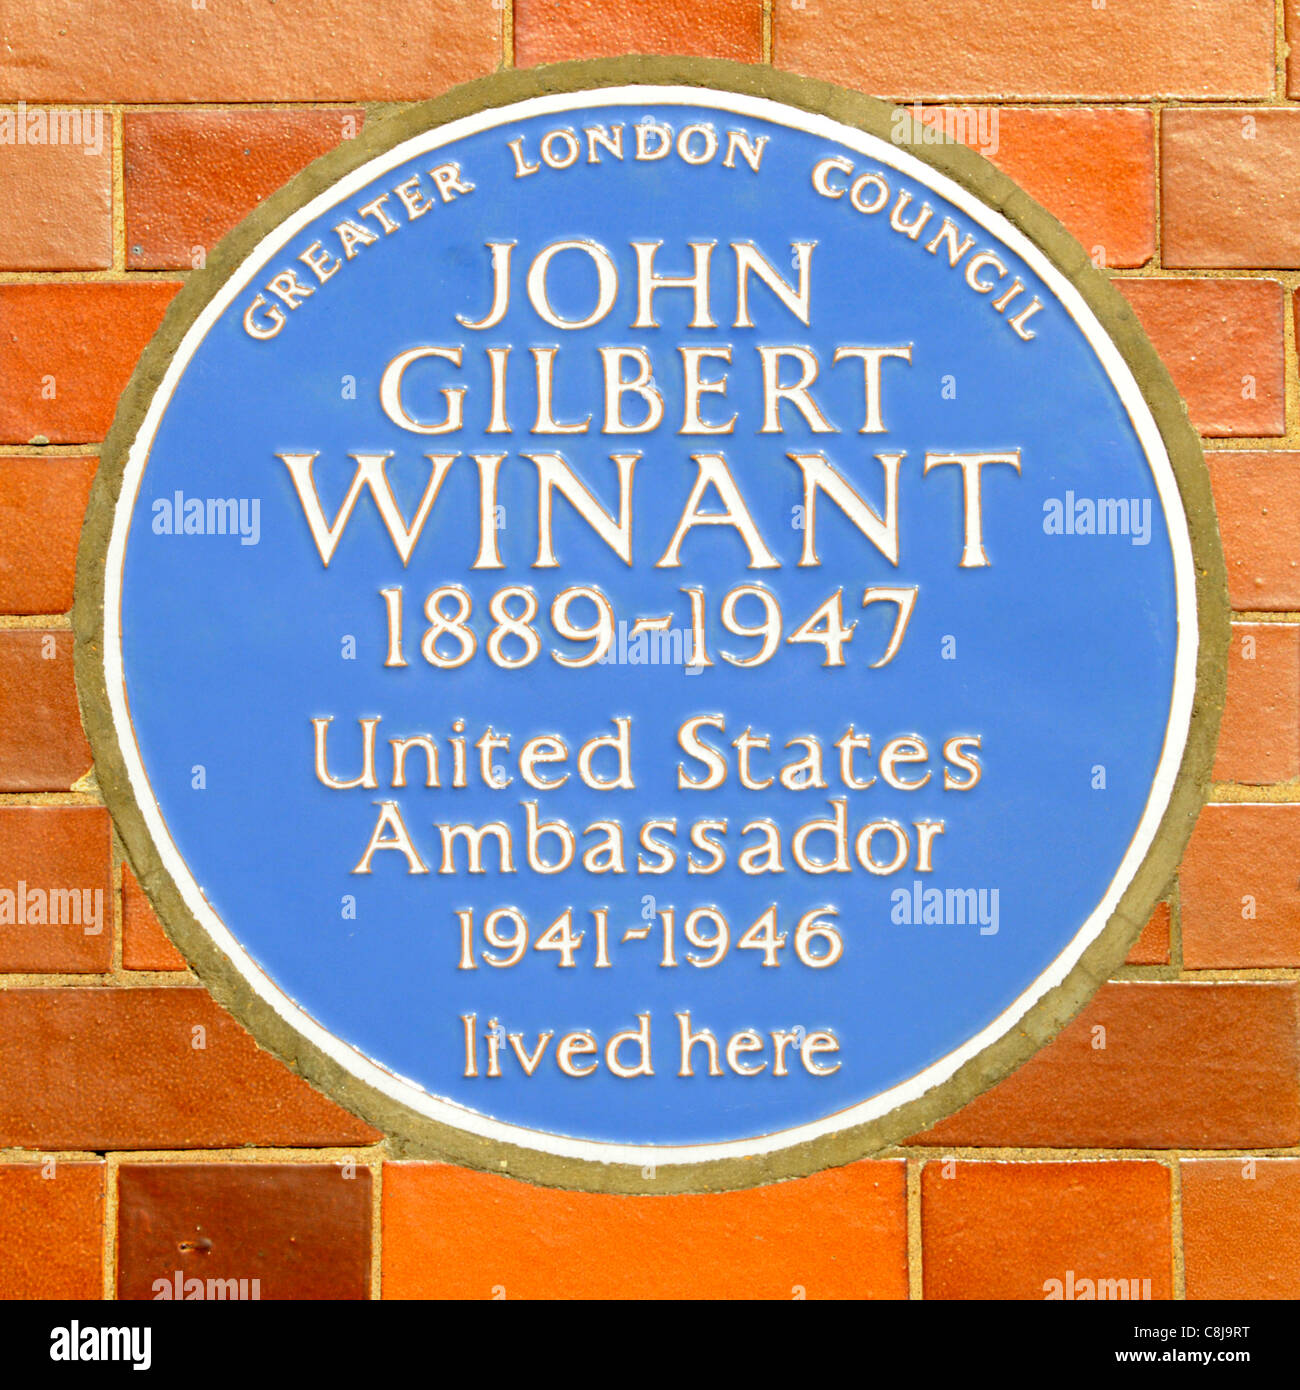 Greater London Council blue plaque commemorating John Gilbert Winant United States American ambassador lived here - Stock Image